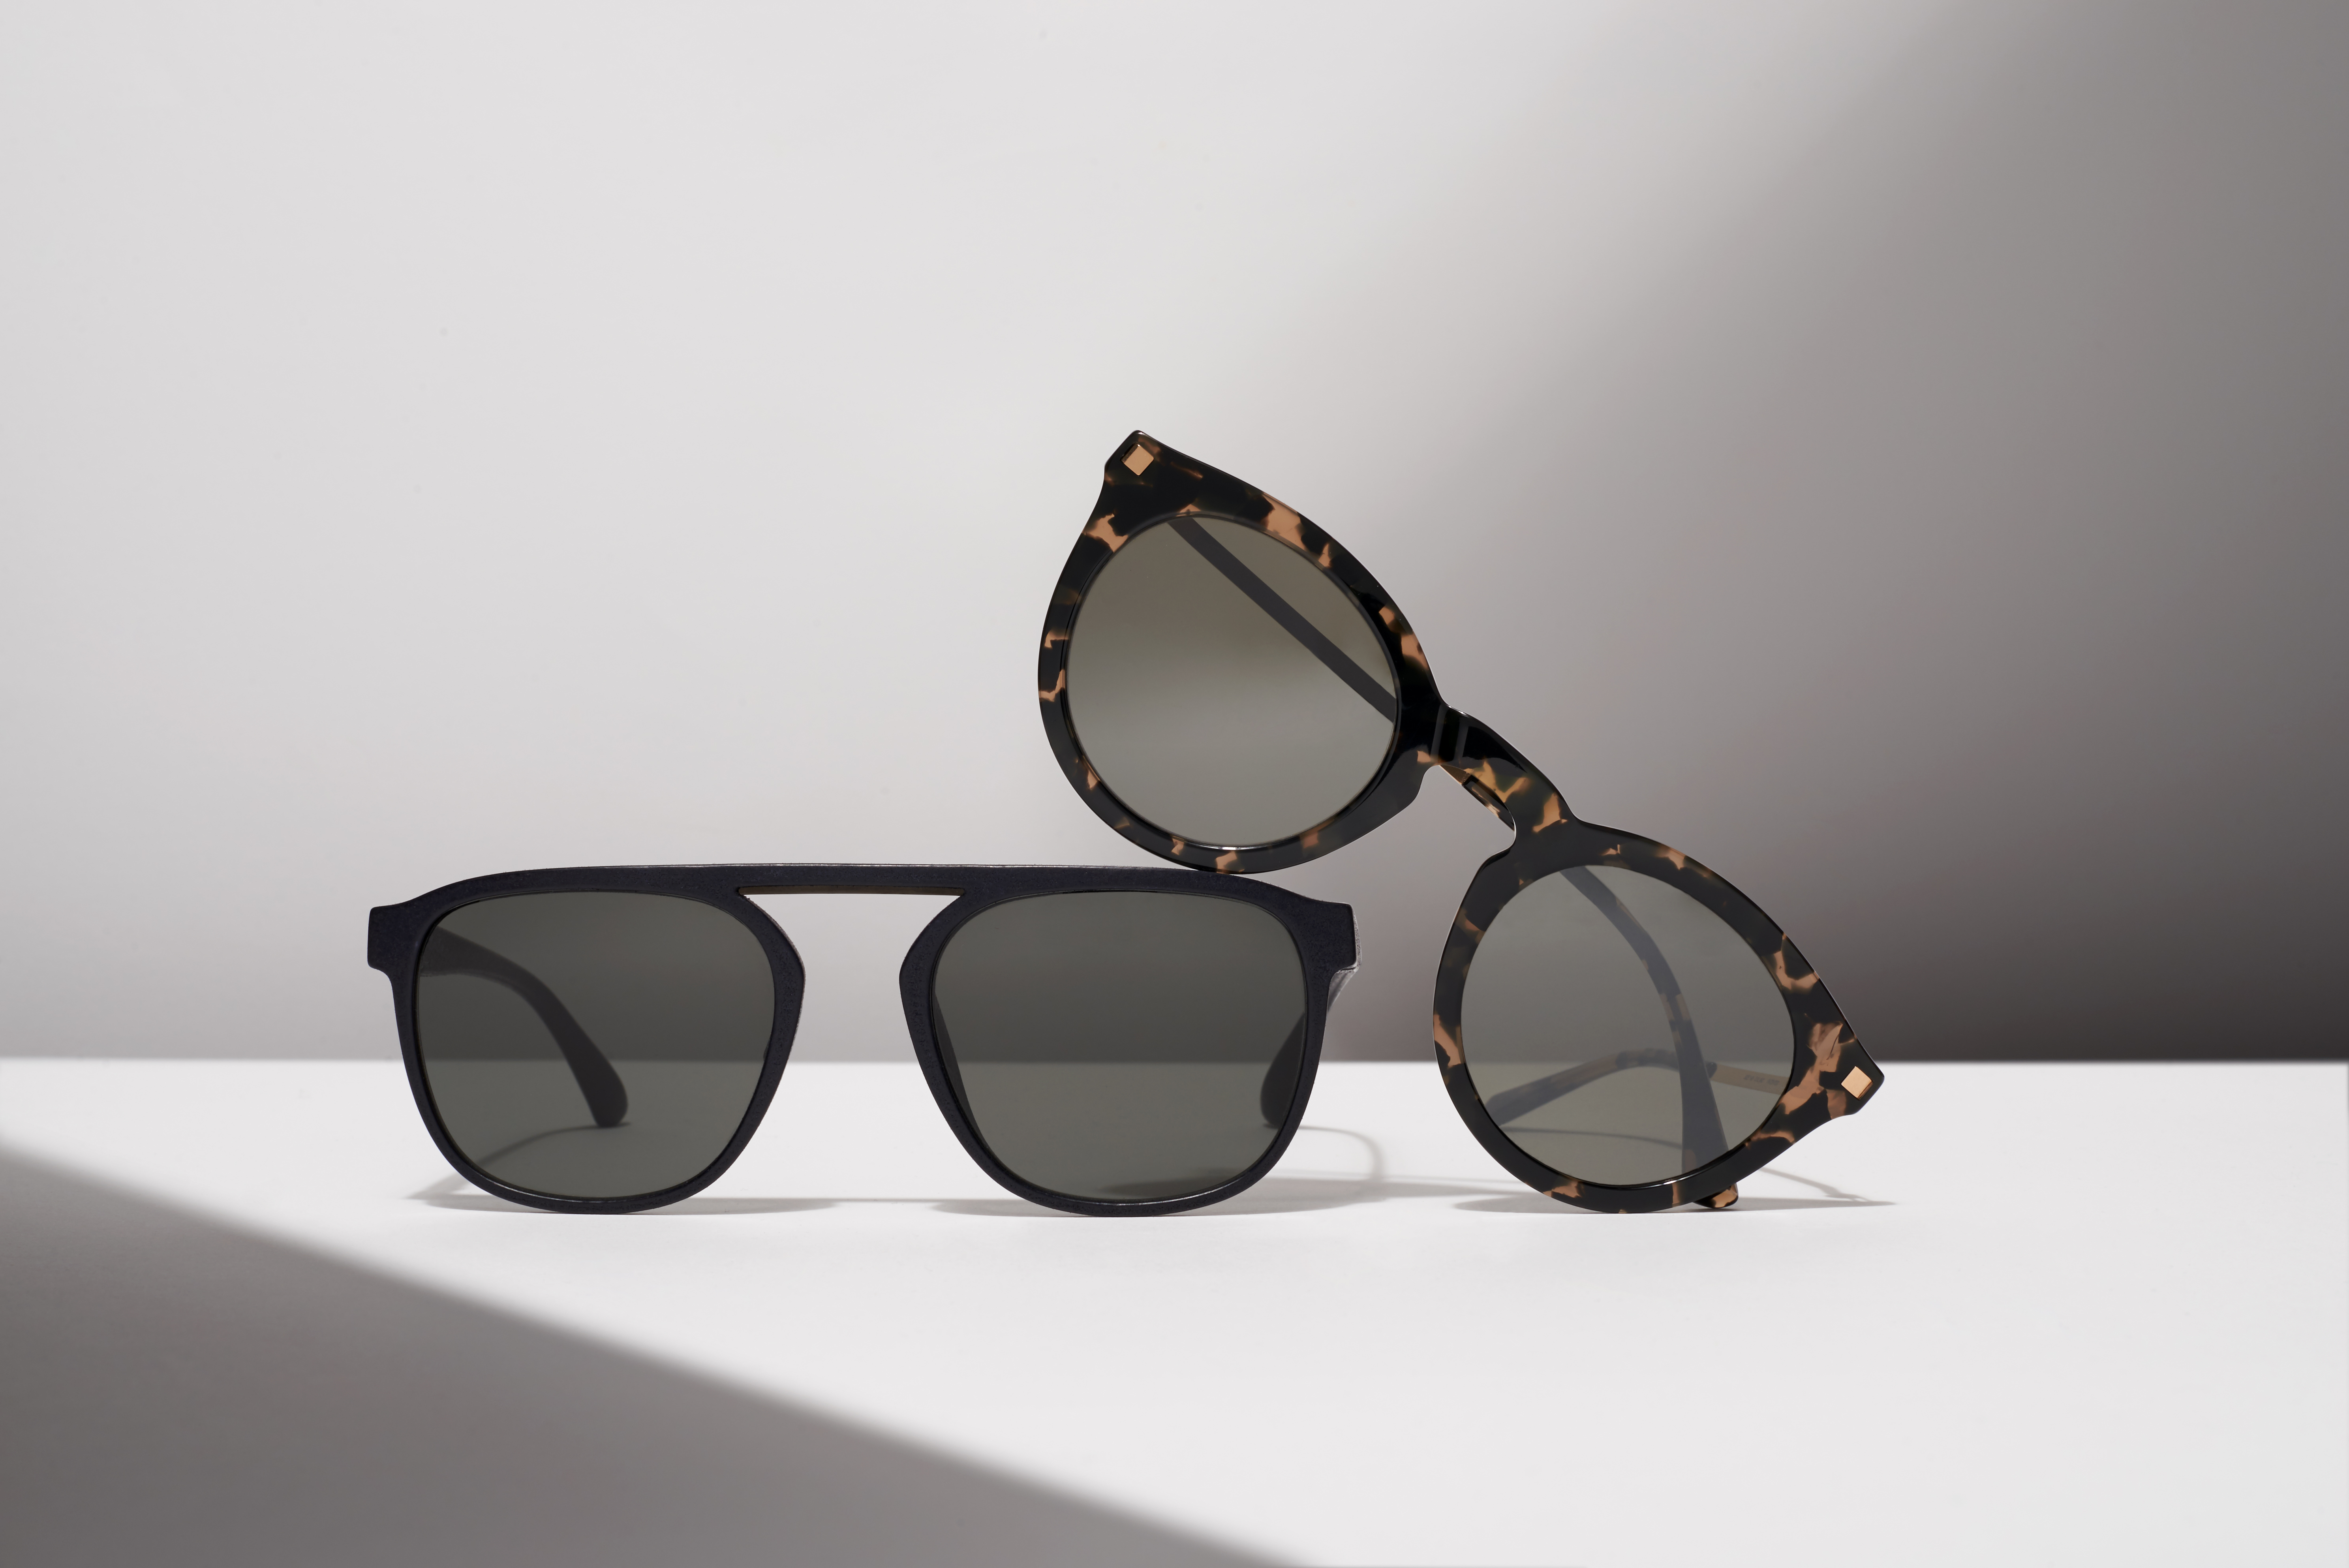 MYKITA New Arrivals Sunglasses Meriwa Pabu Desktop